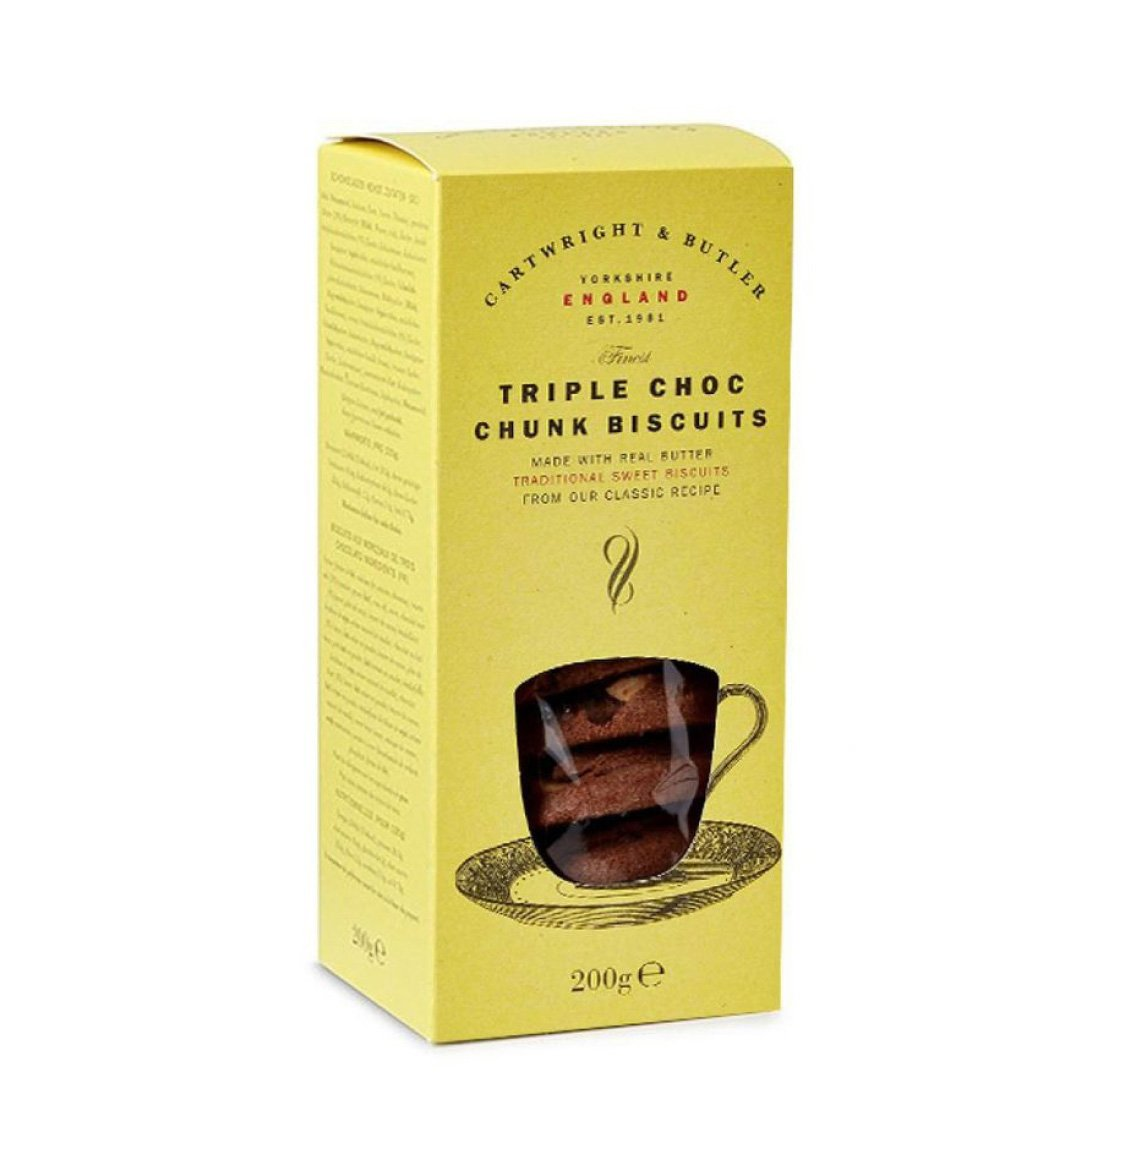 Cartwright and Butler Triple Choc Chunk Biscuits in Carton 200g